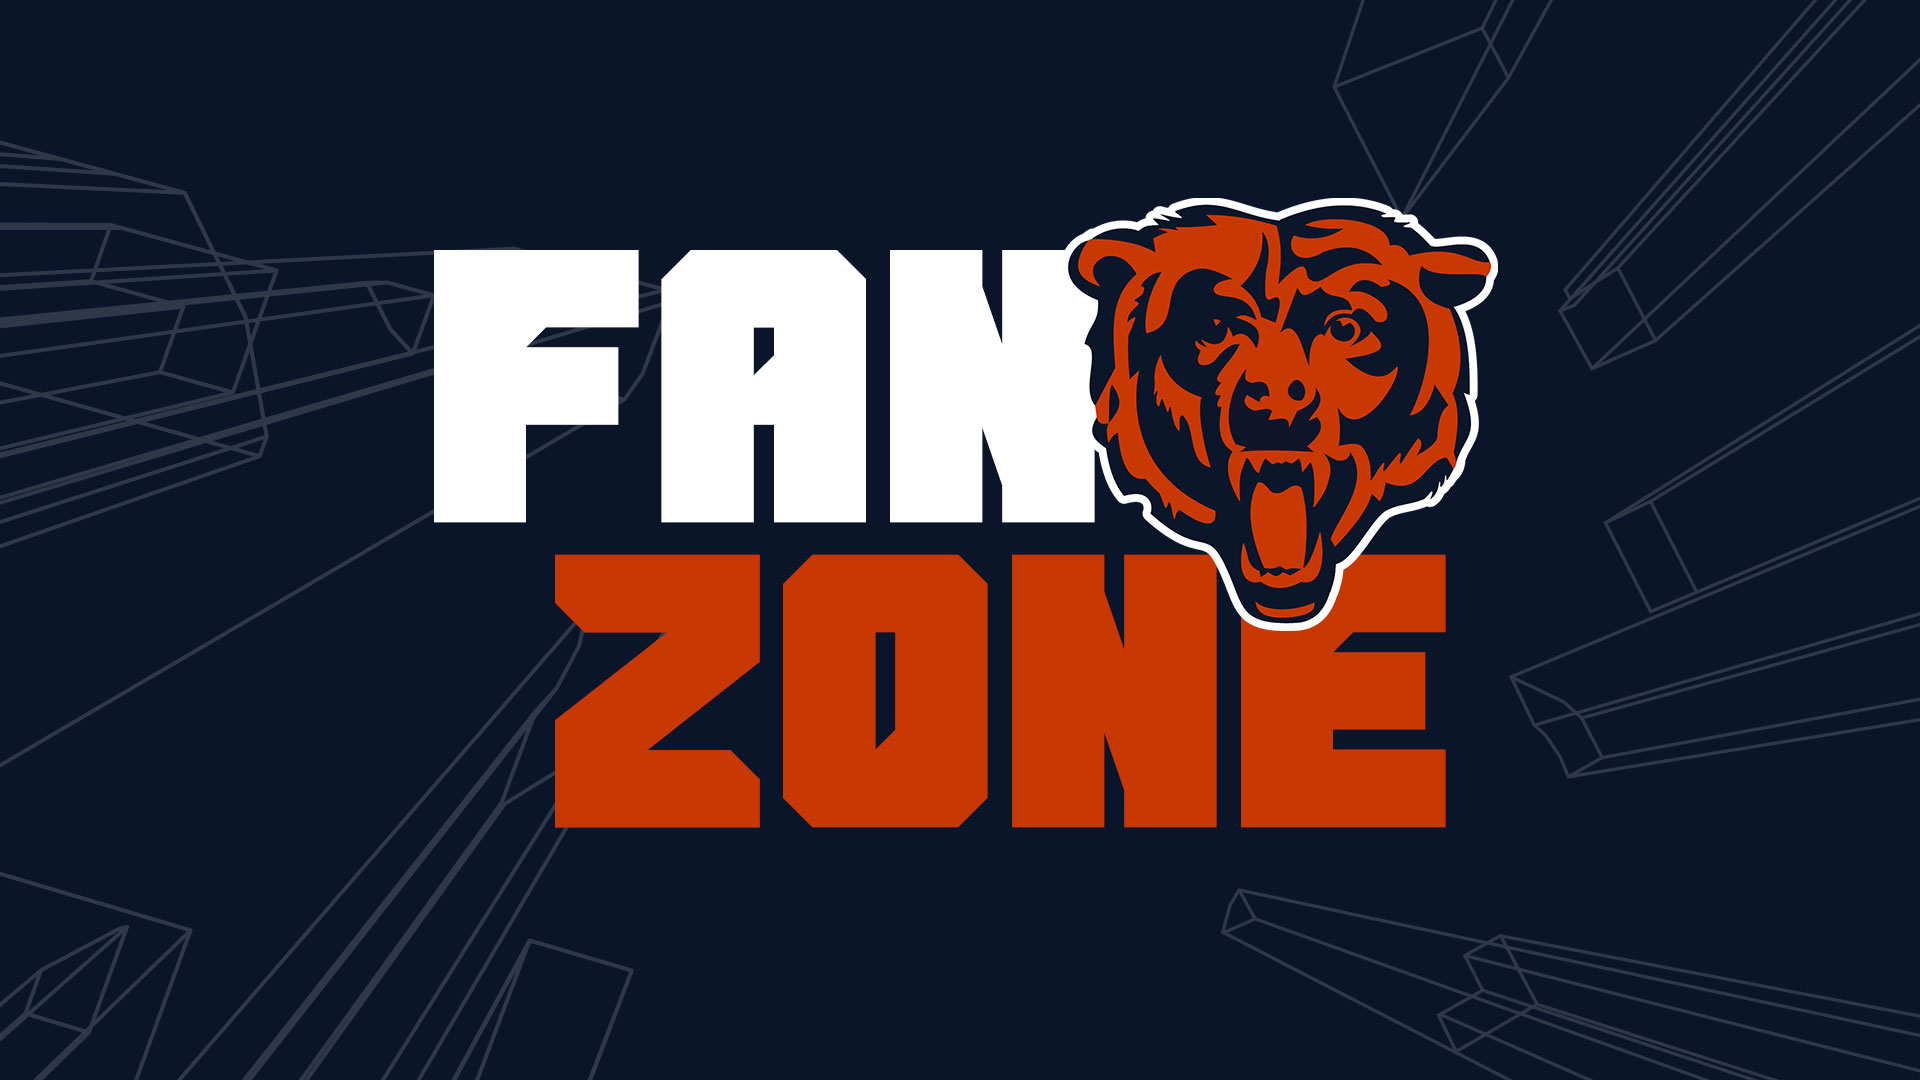 Chicago Bears Fan Zone